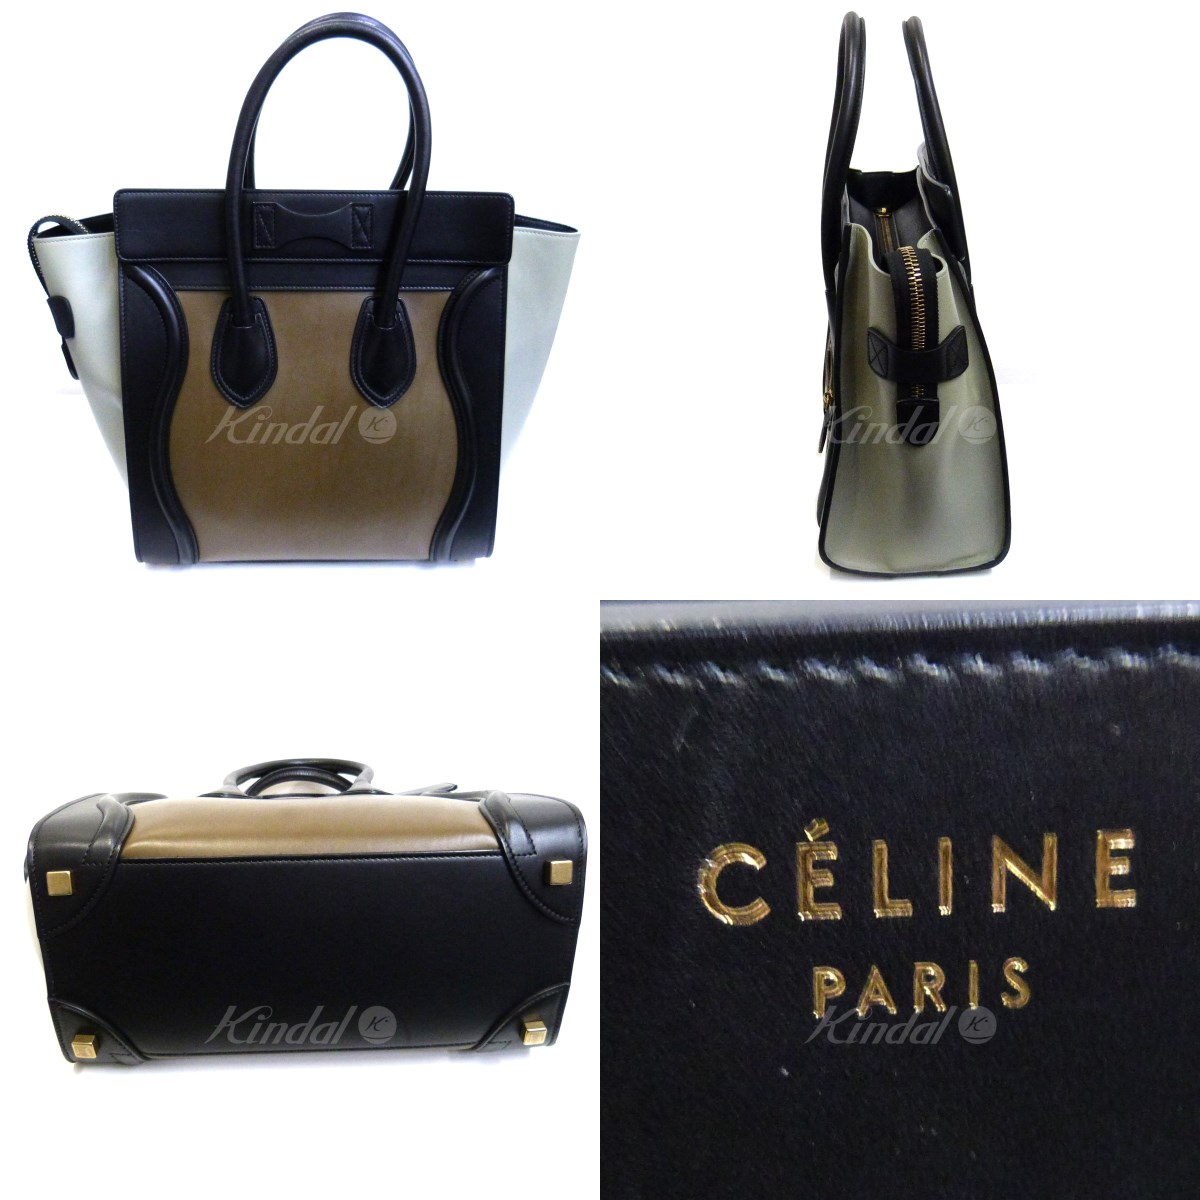 3c4e974cb2aa CELINE luggage leather tote bag black X brown size  - (Celine)